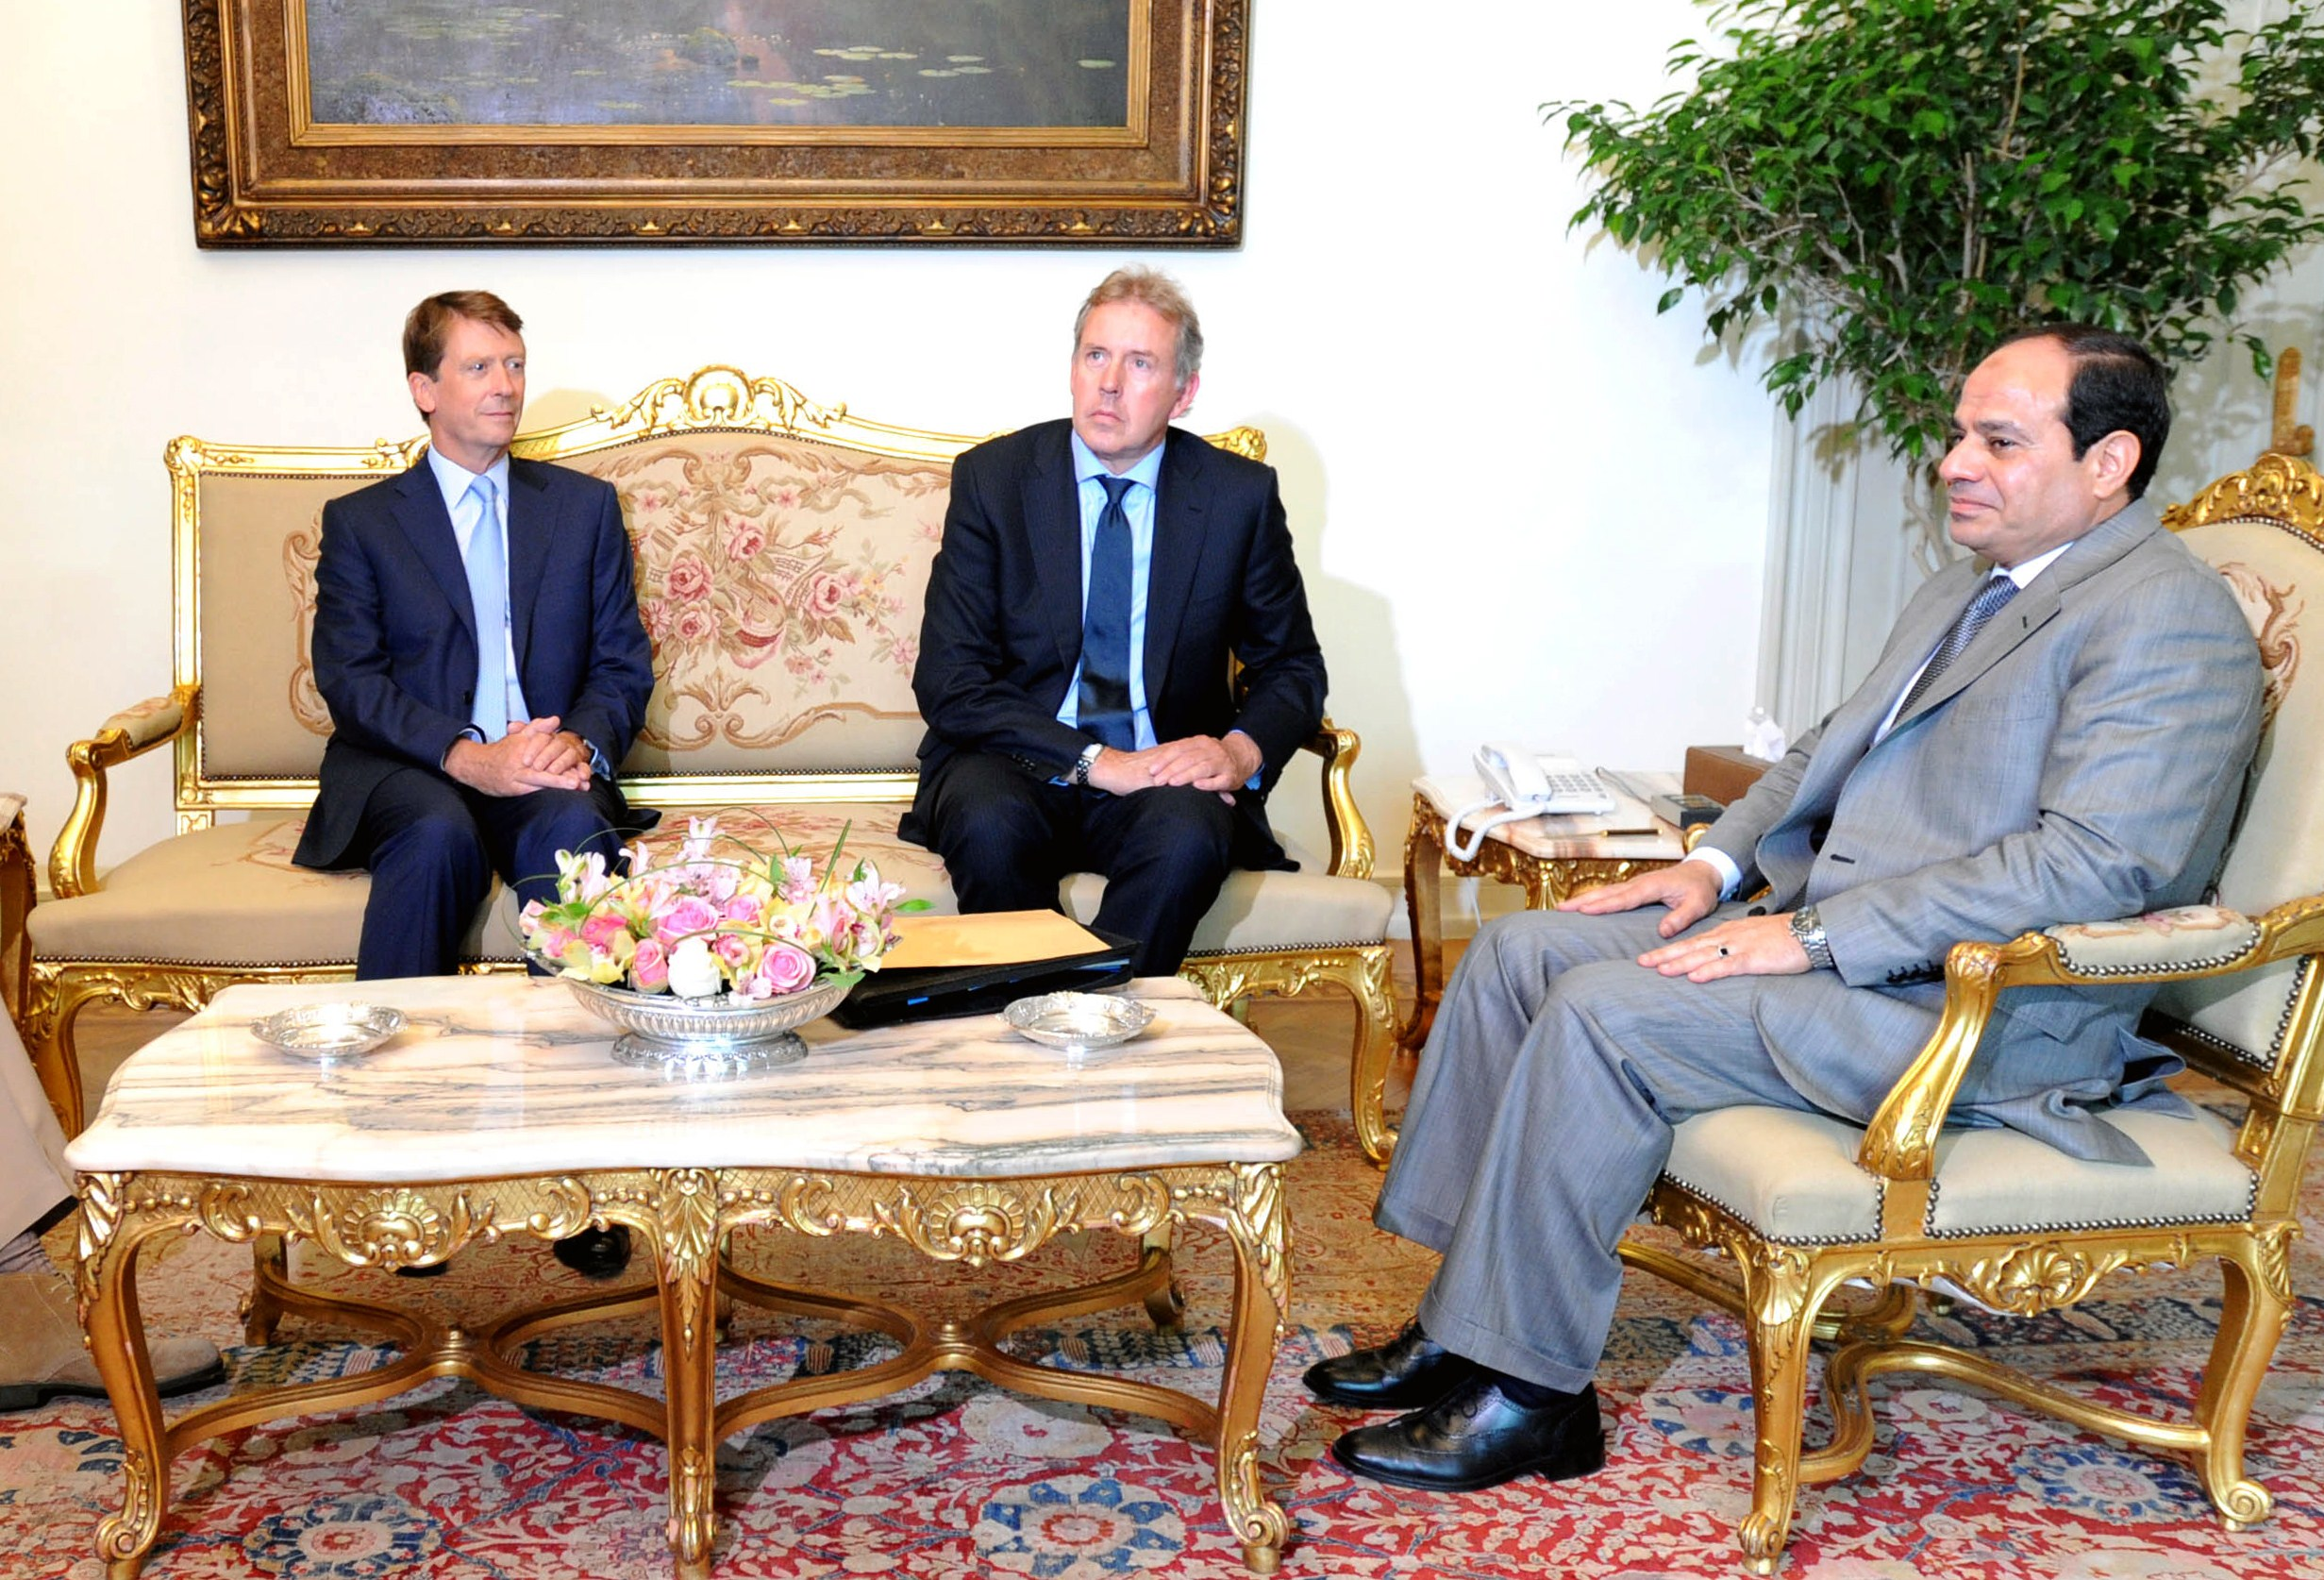 A handout picture made available on June 9, 2014 by the Egyptian presidency shows Egyptian President Abdel Fattah al-Sisi (R) meeting with British Prime Minister's National Security Adviser, Sir Kim Darroch (C) and British ambassador to Egypt, James Watt (L) at the presidential palace in Cairo. Sisi became on June 8, 2014 Egypt's second elected president since the overthrow of Hosni Mubarak, which unleashed more than three years of political turmoil in the Arab world's most populous nation.  (AFP PHOTO / HO / EGYPTIAN PRESIDENCY)